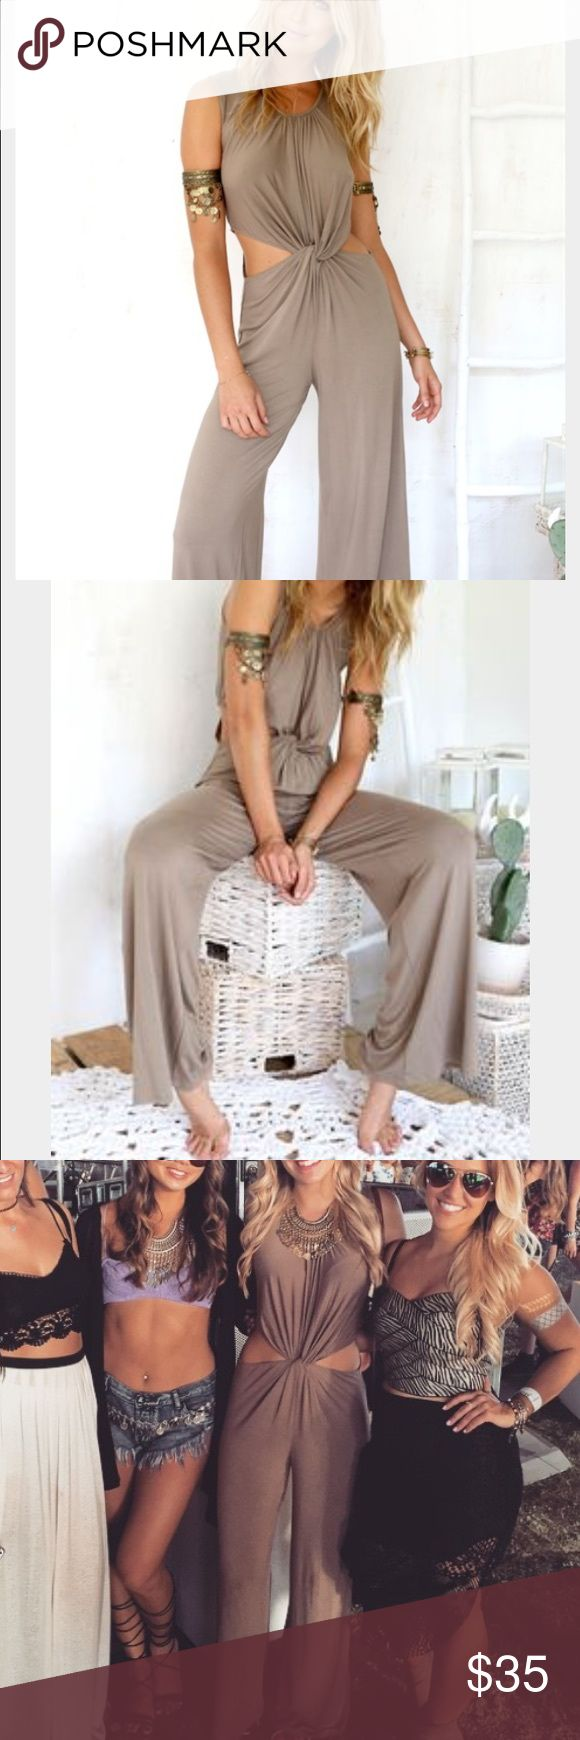 Sabo Skirt playsuit Sabo Skirt brown playsuit - worn once for a few hours at Coachella, like new. Sabo Skirt Pants Jumpsuits & Rompers